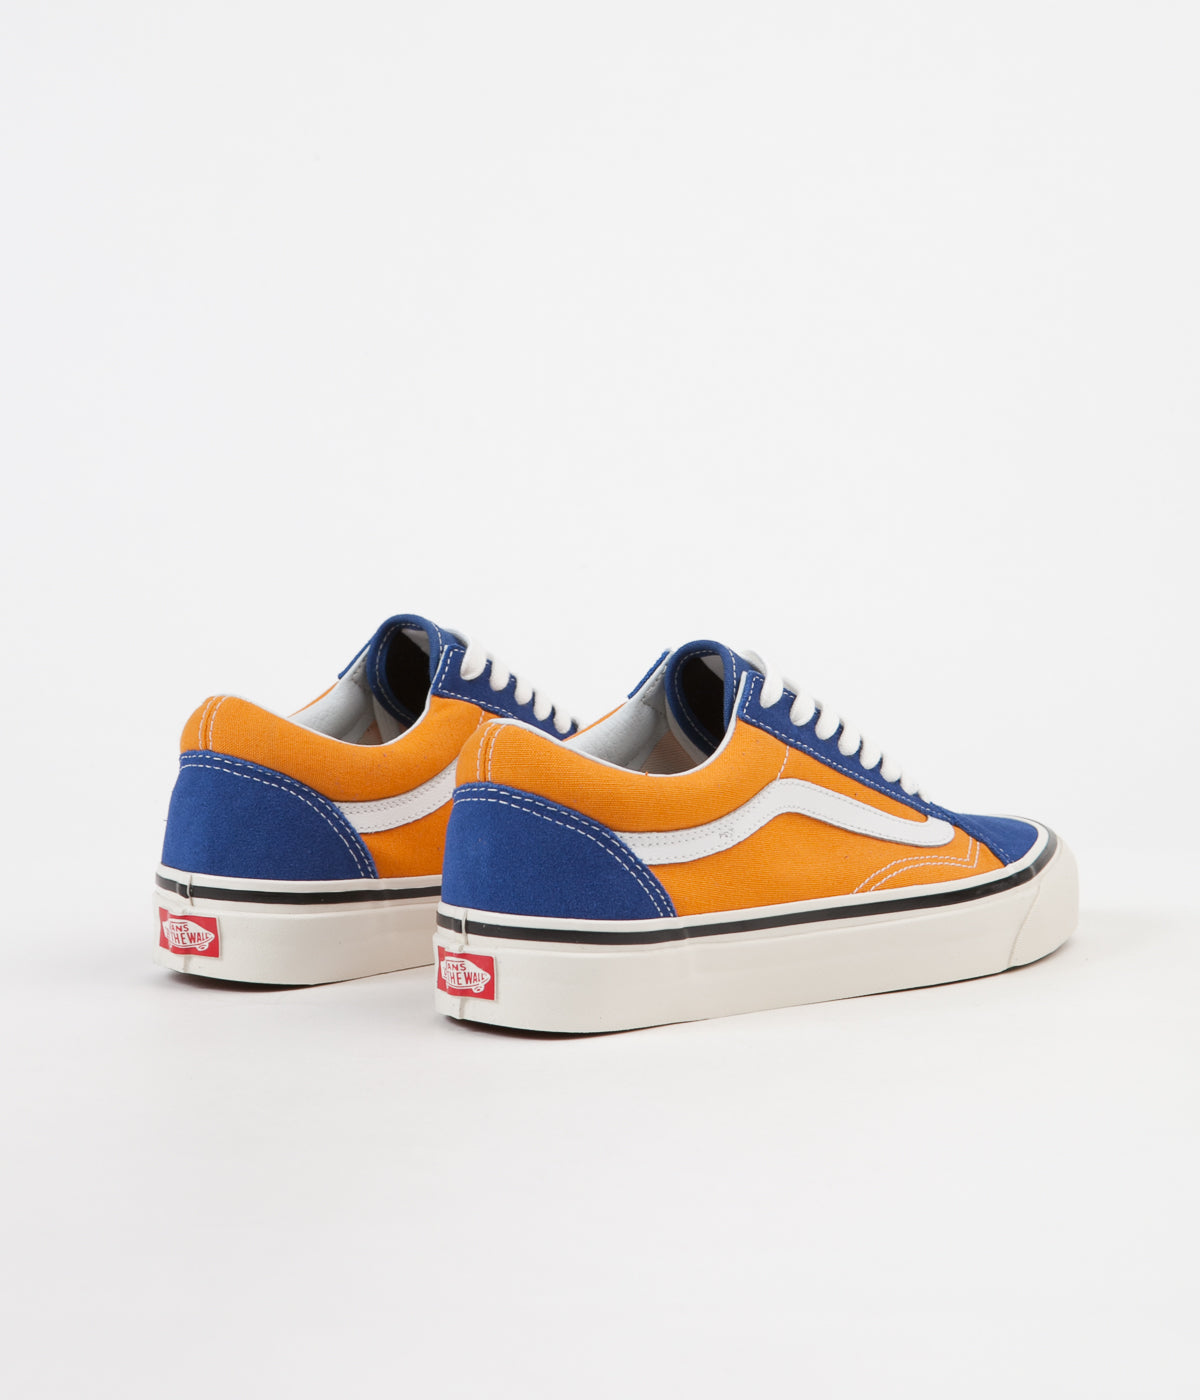 vans old skool 36 dx anaheim factory shoes og blue og. Black Bedroom Furniture Sets. Home Design Ideas